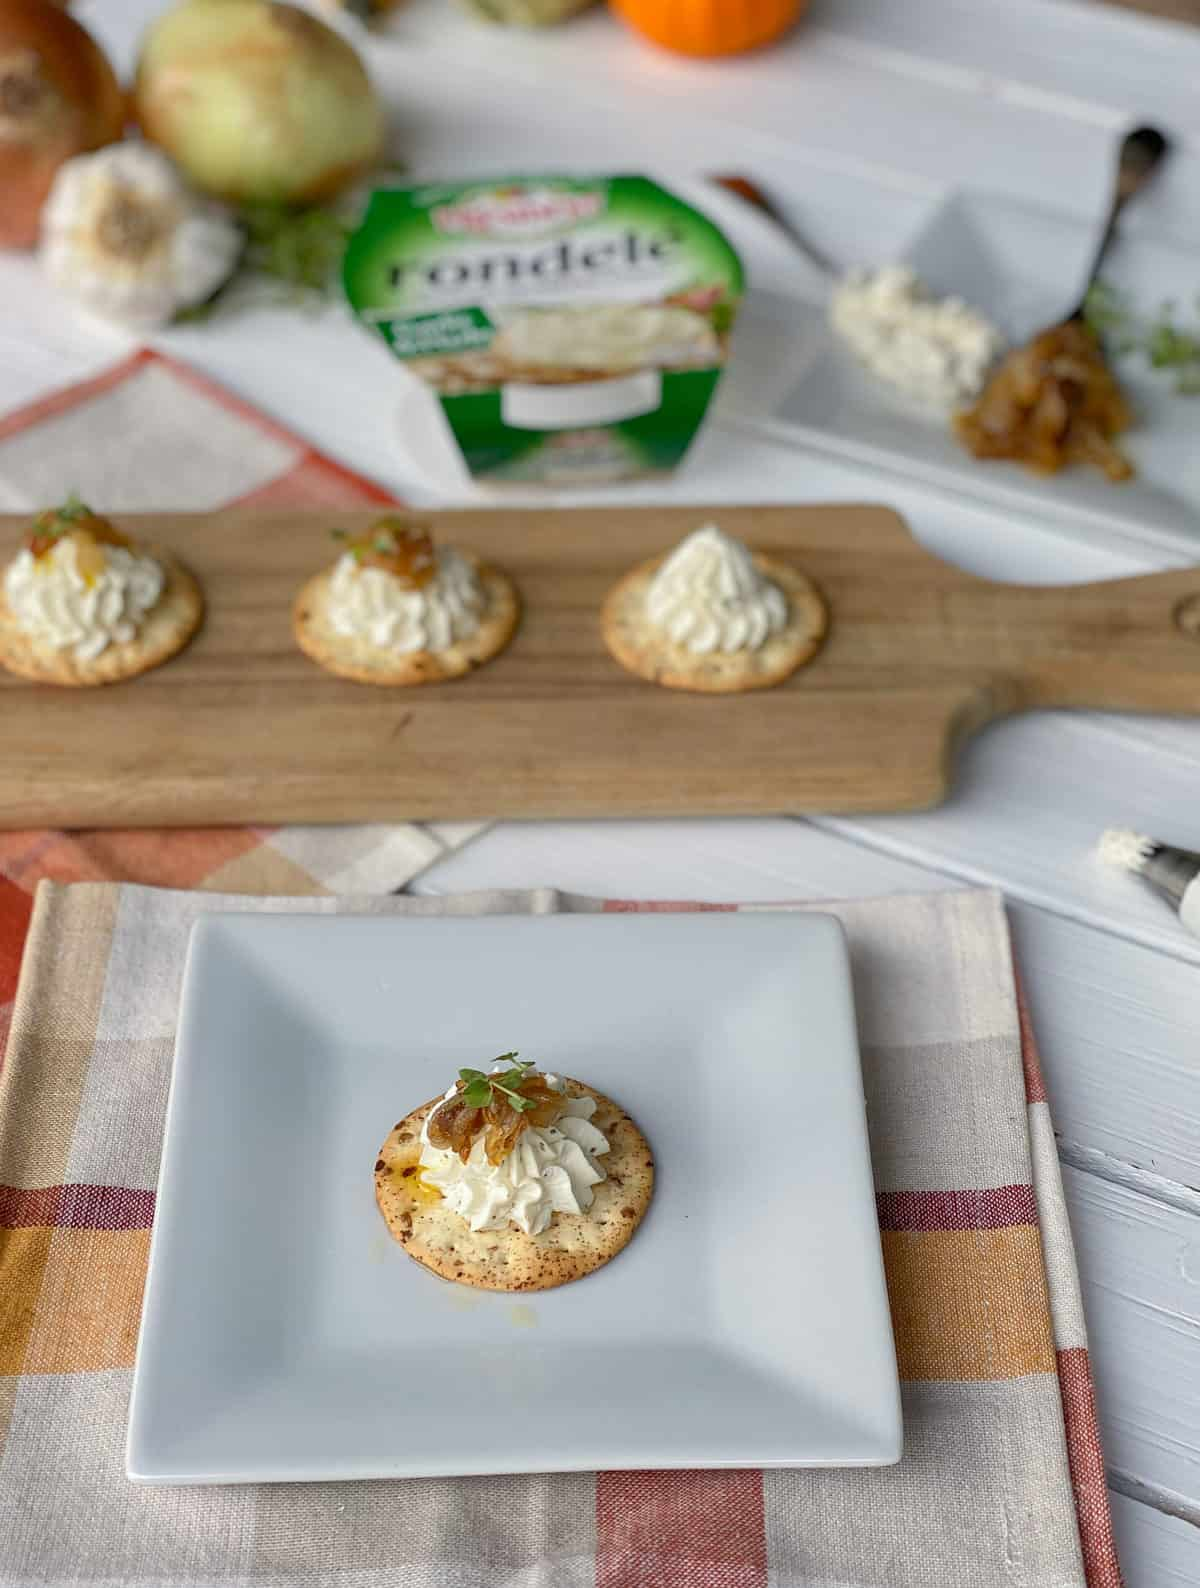 canape crackers on plate with onions and cheese.